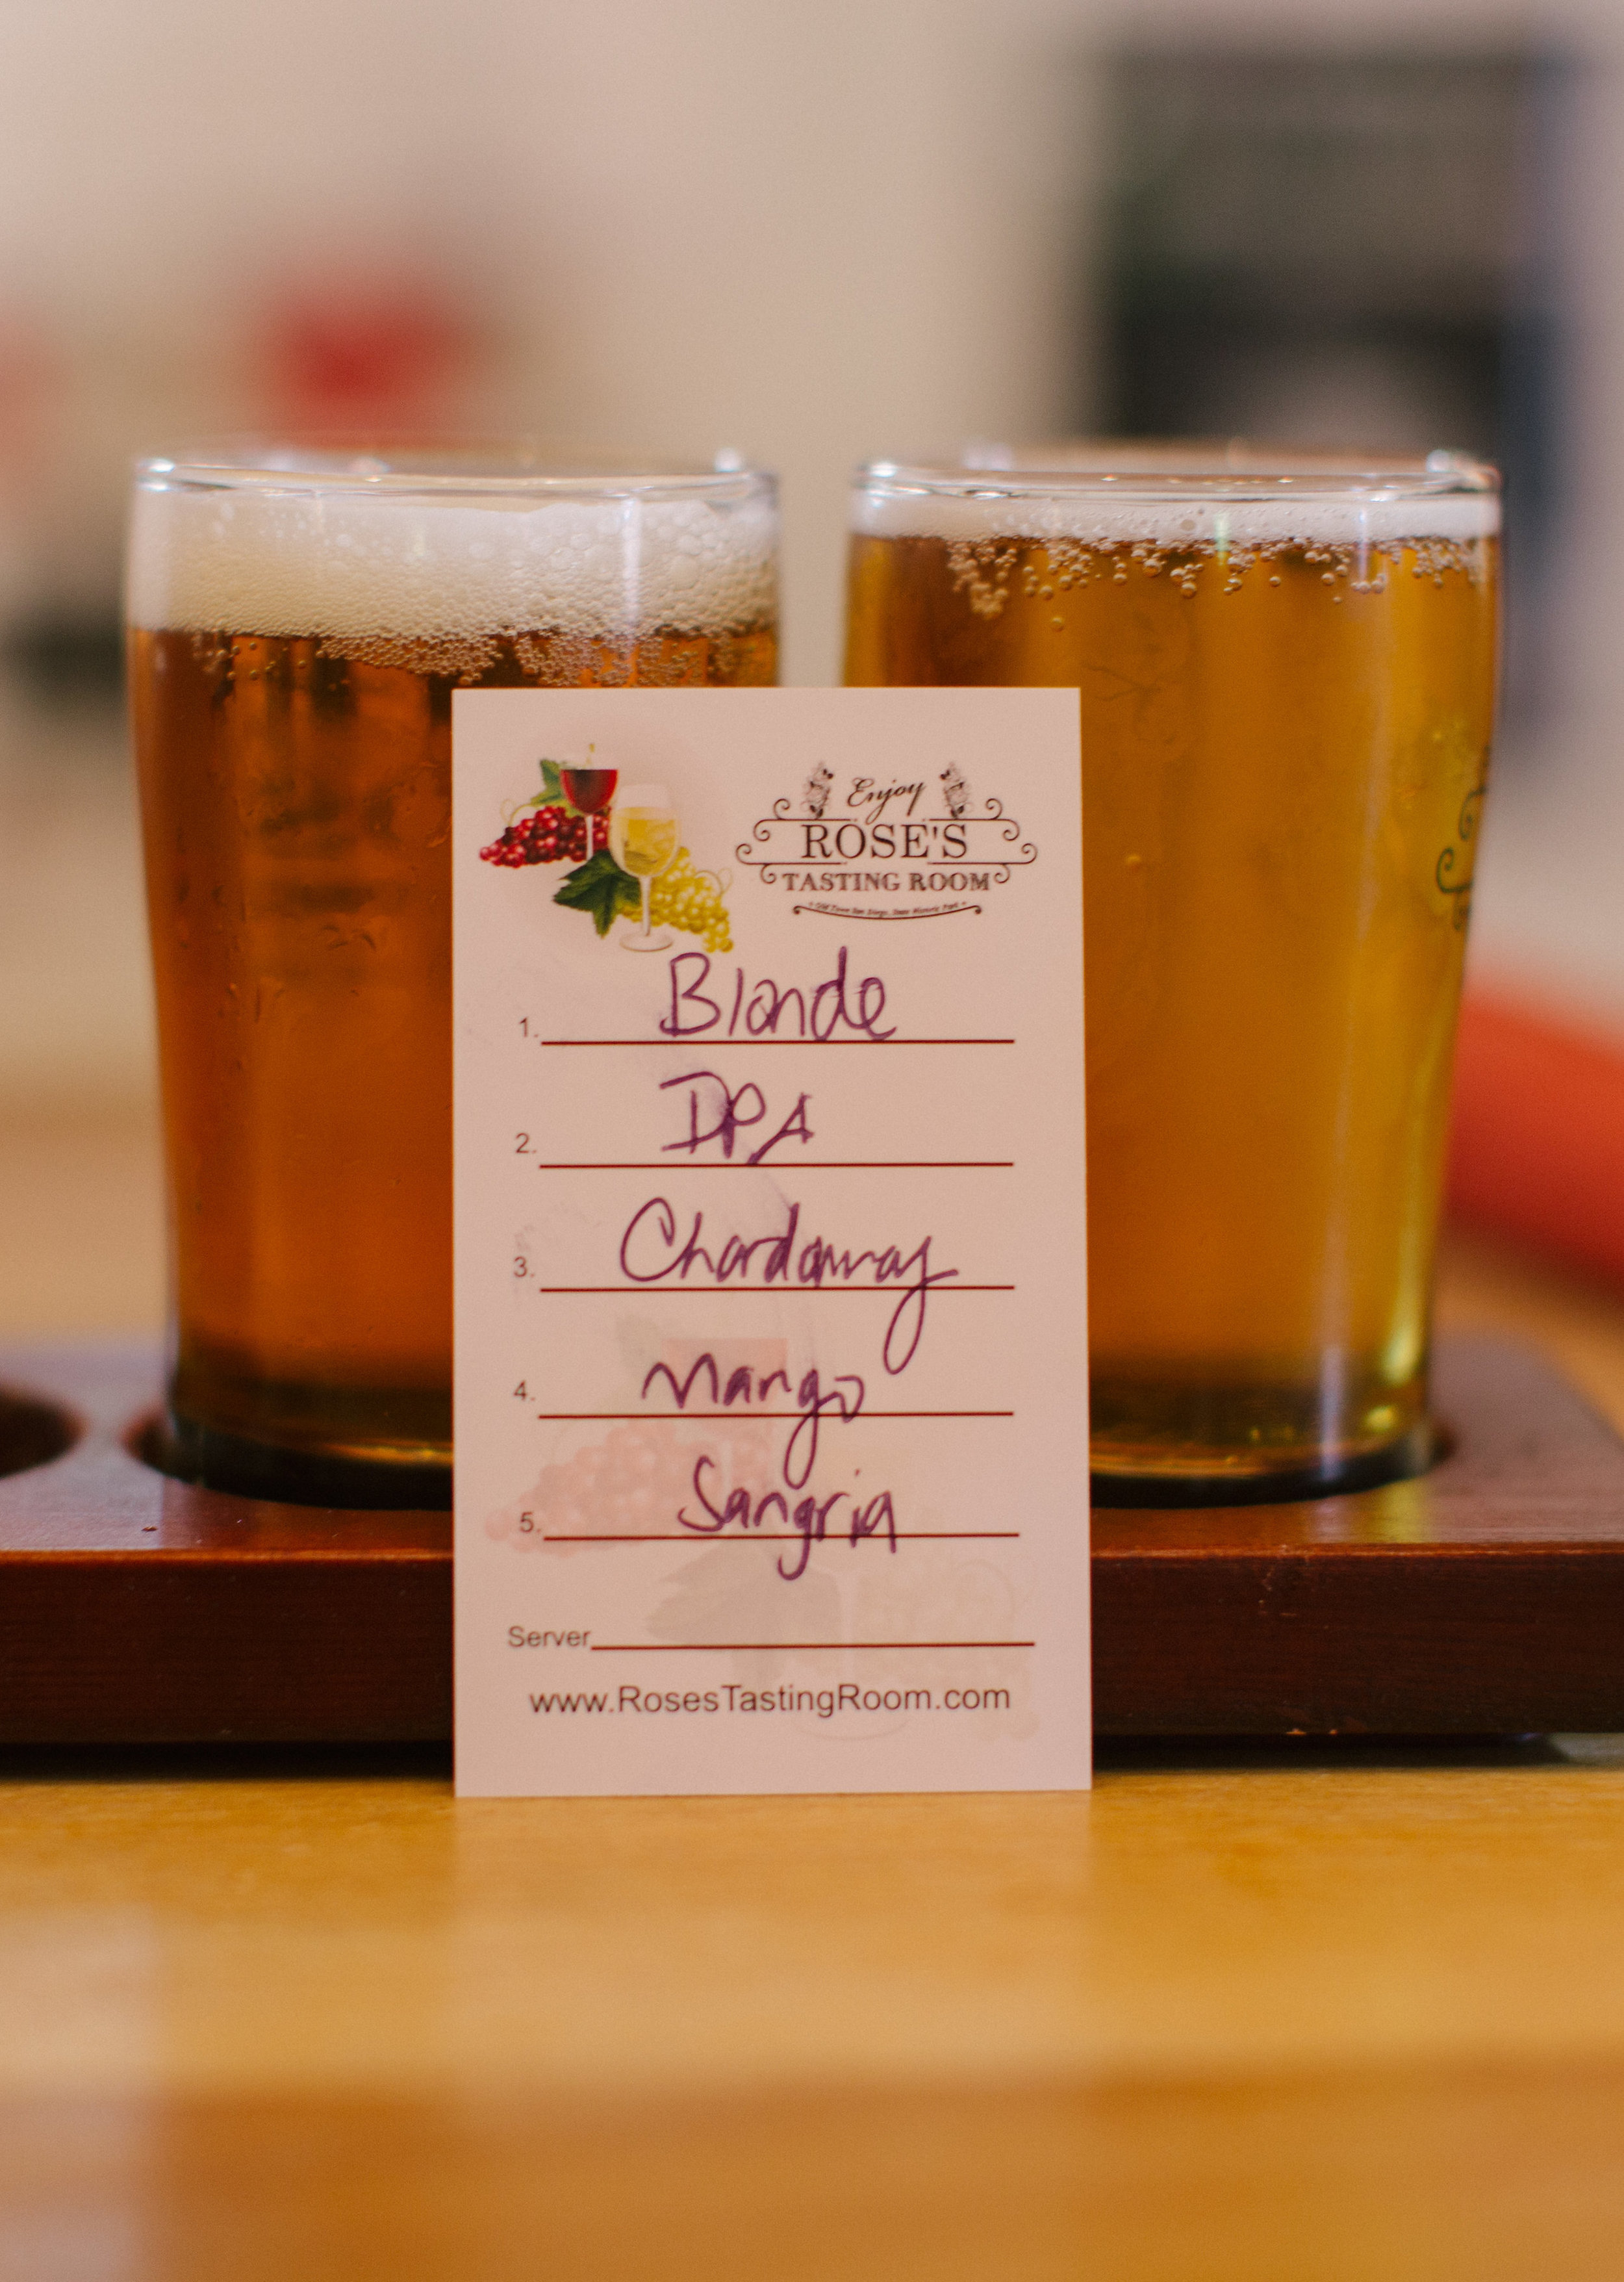 Cinco de Mayo in Old Town San Diego! First head to Rose's Tasting Room - local San Diego beer and wine rotated monthly in Old Town, San Diego!